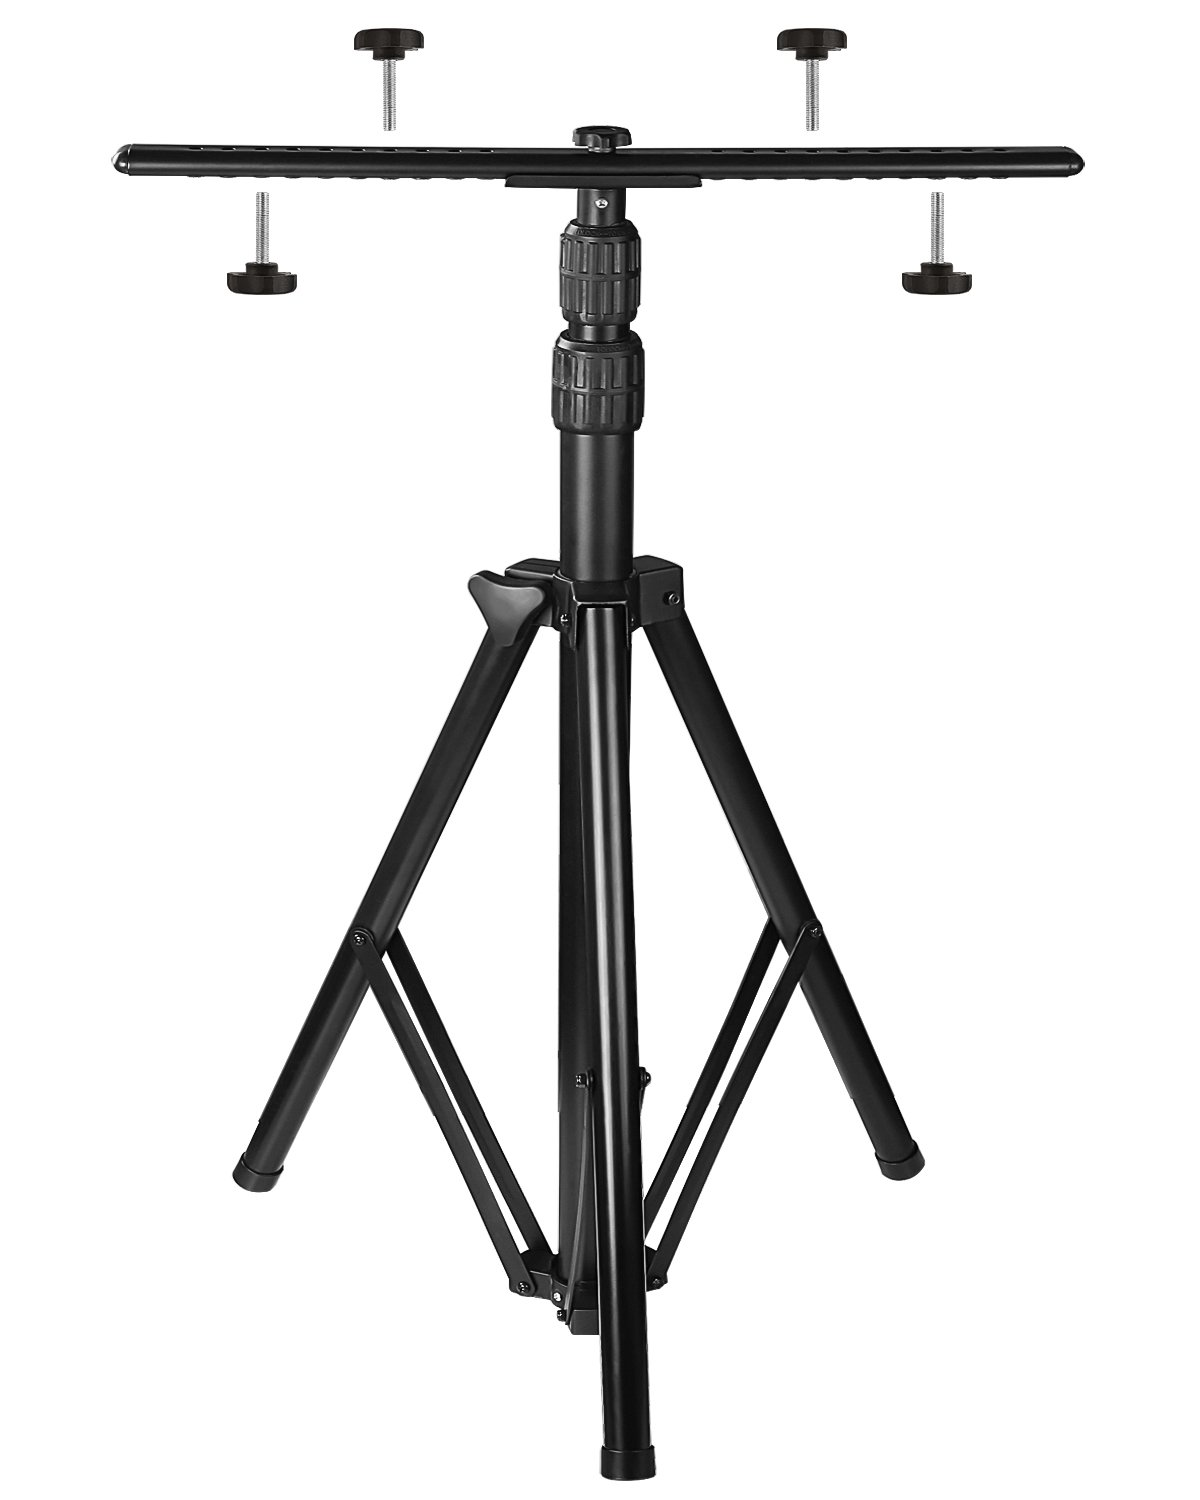 [Upgraded] Adjustable Tripod Stand for LED Work Light - Corrosion Resistant LED Flood Light Tripod Stand- Steel Telescoping for Auto, Home, Work, Job, Construction, Camping, Indoor and Outdoor Use